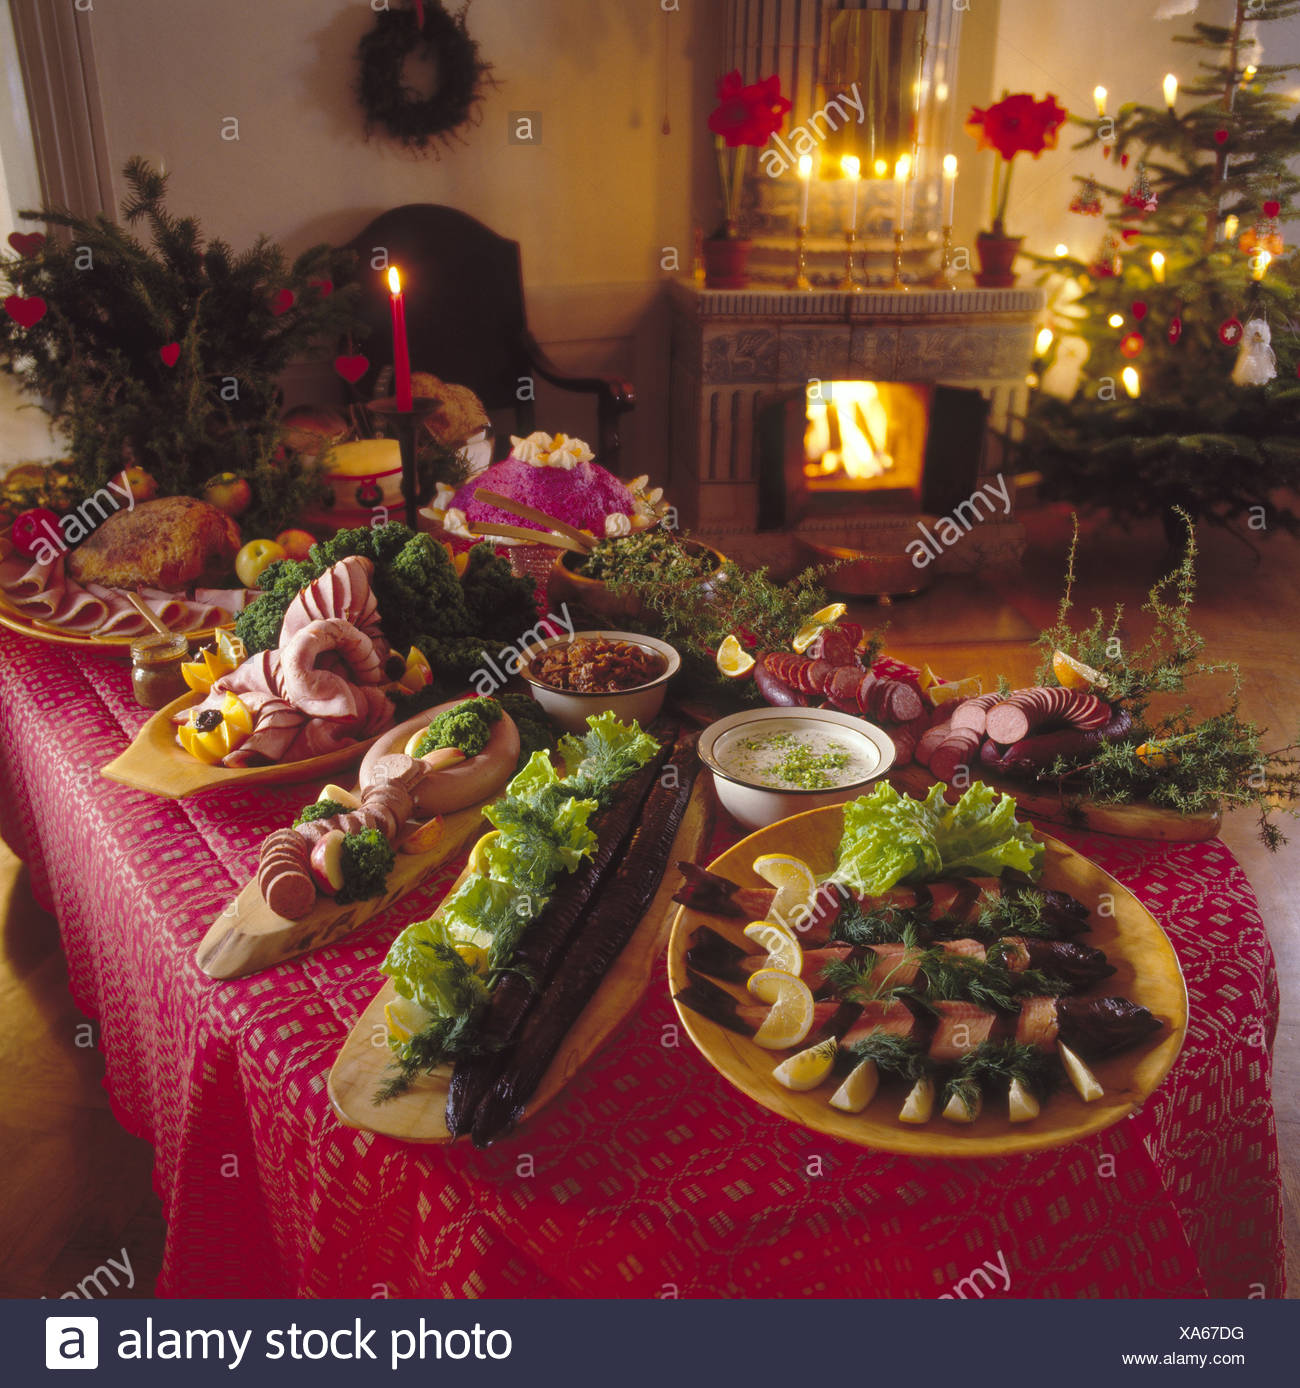 Christmas Food Decorations On Dinner Table Stock Photo 281650028